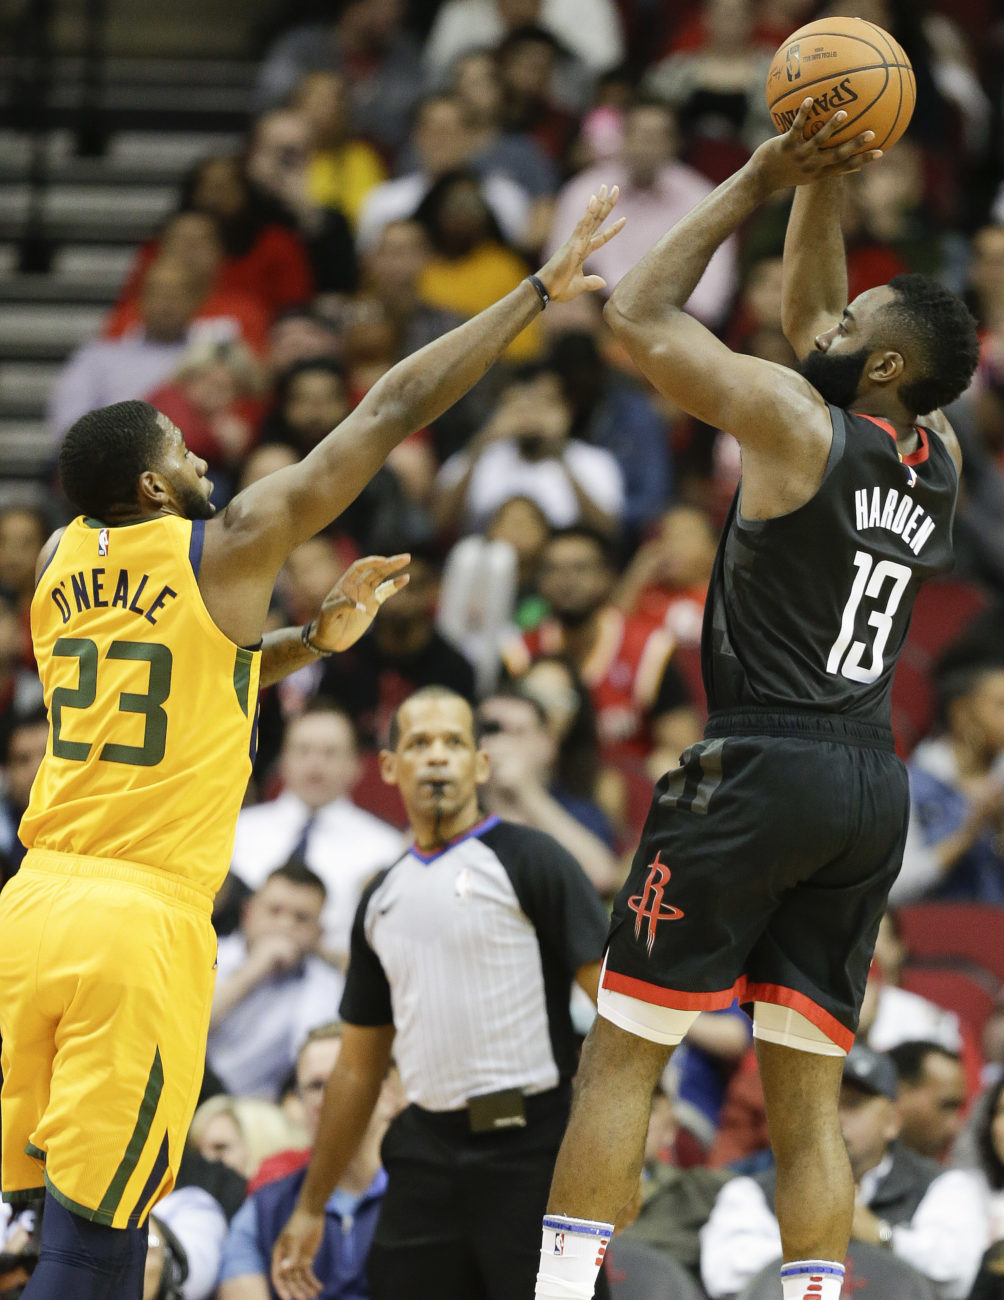 finest selection e4803 7485a Harden s 47 points lead Rockets over Jazz 102-97